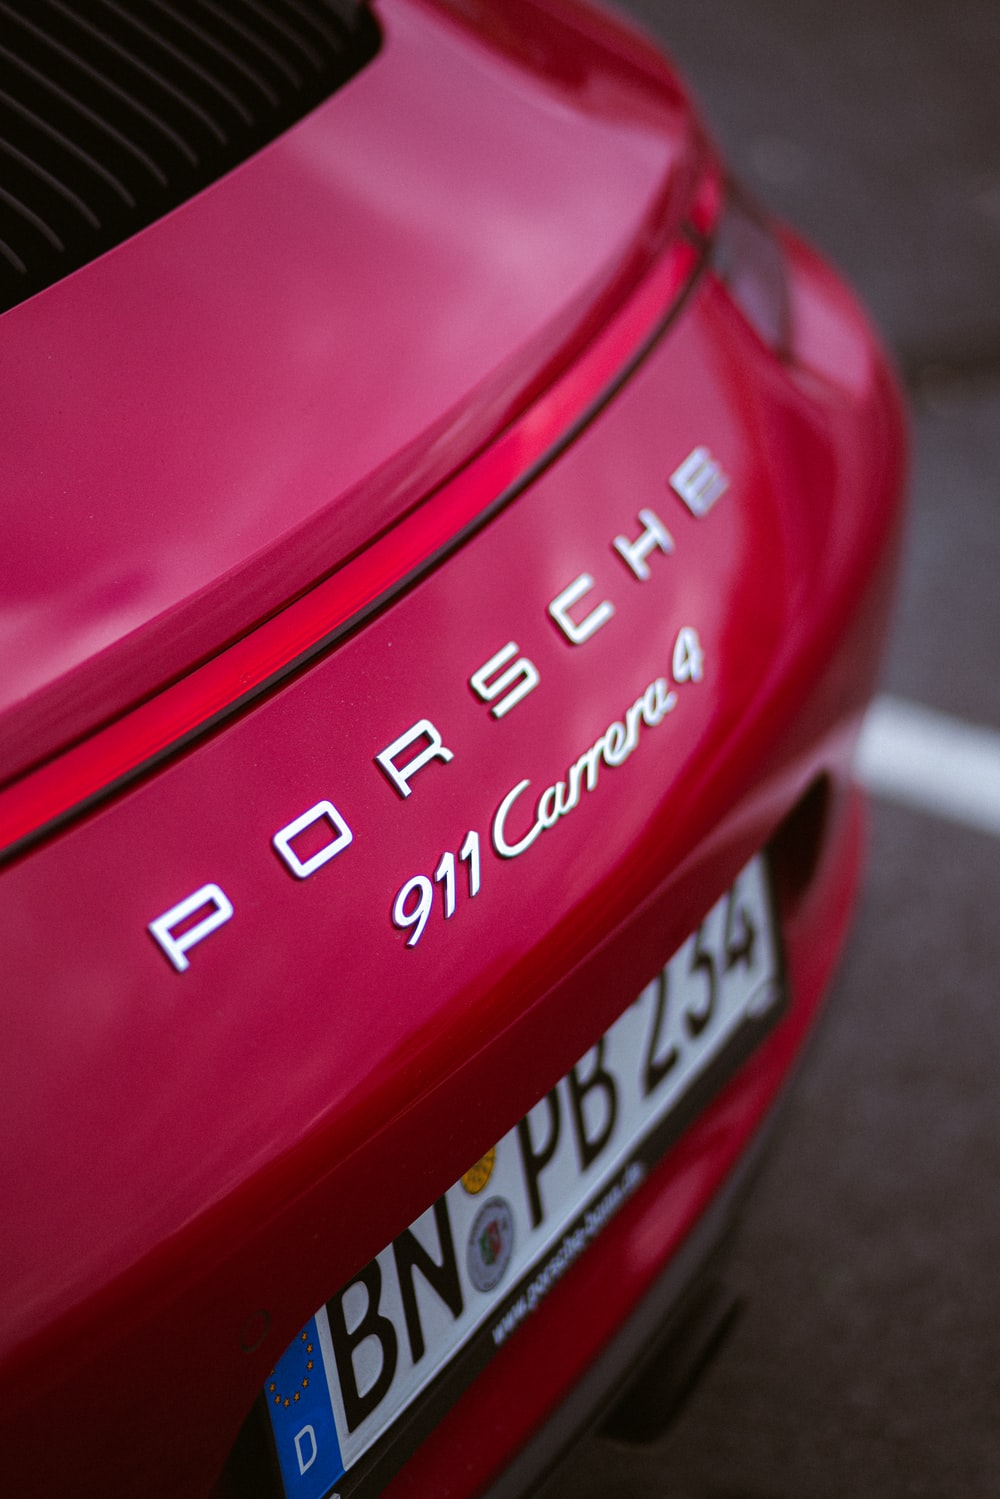 shallow focus photo of red Porsche 911 Carrera 4